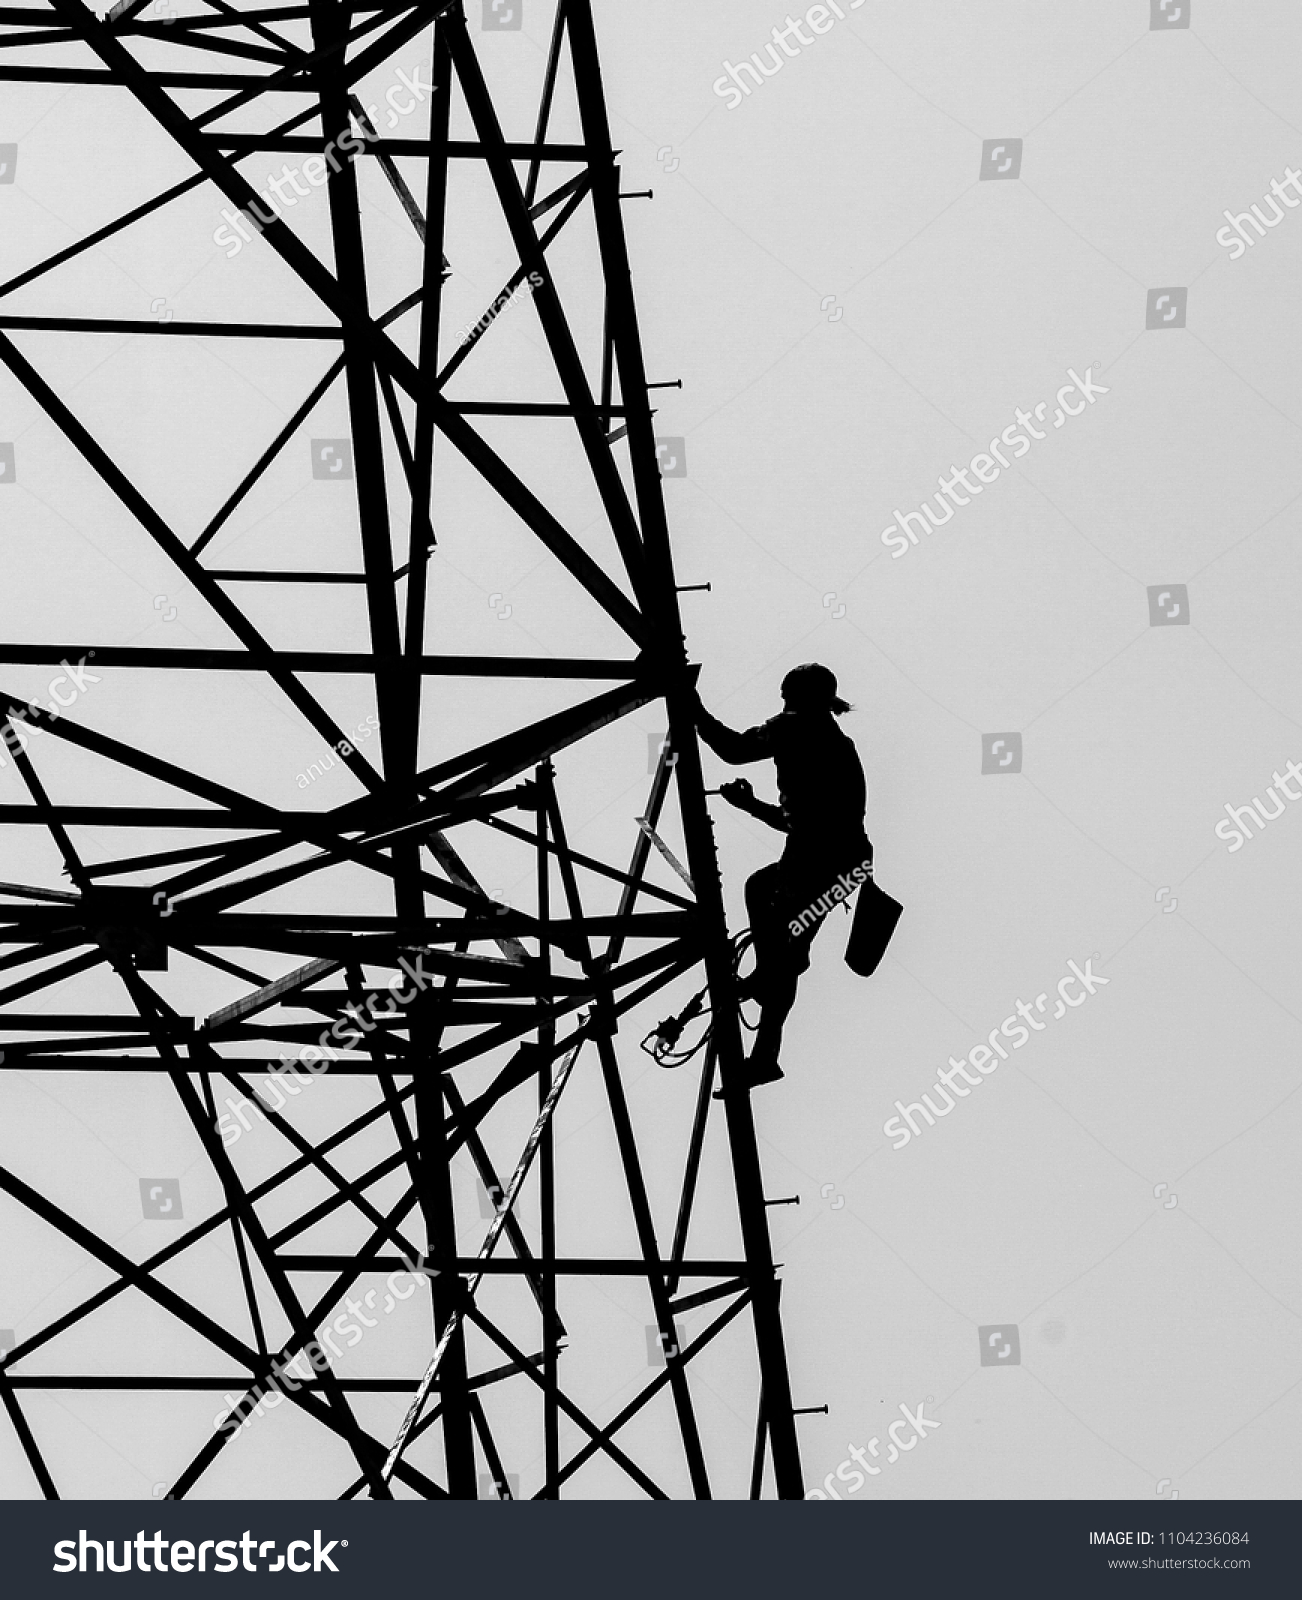 Silhouette Lineman Climbing On Transmission Line Stock Photo Edit Now 1104236084